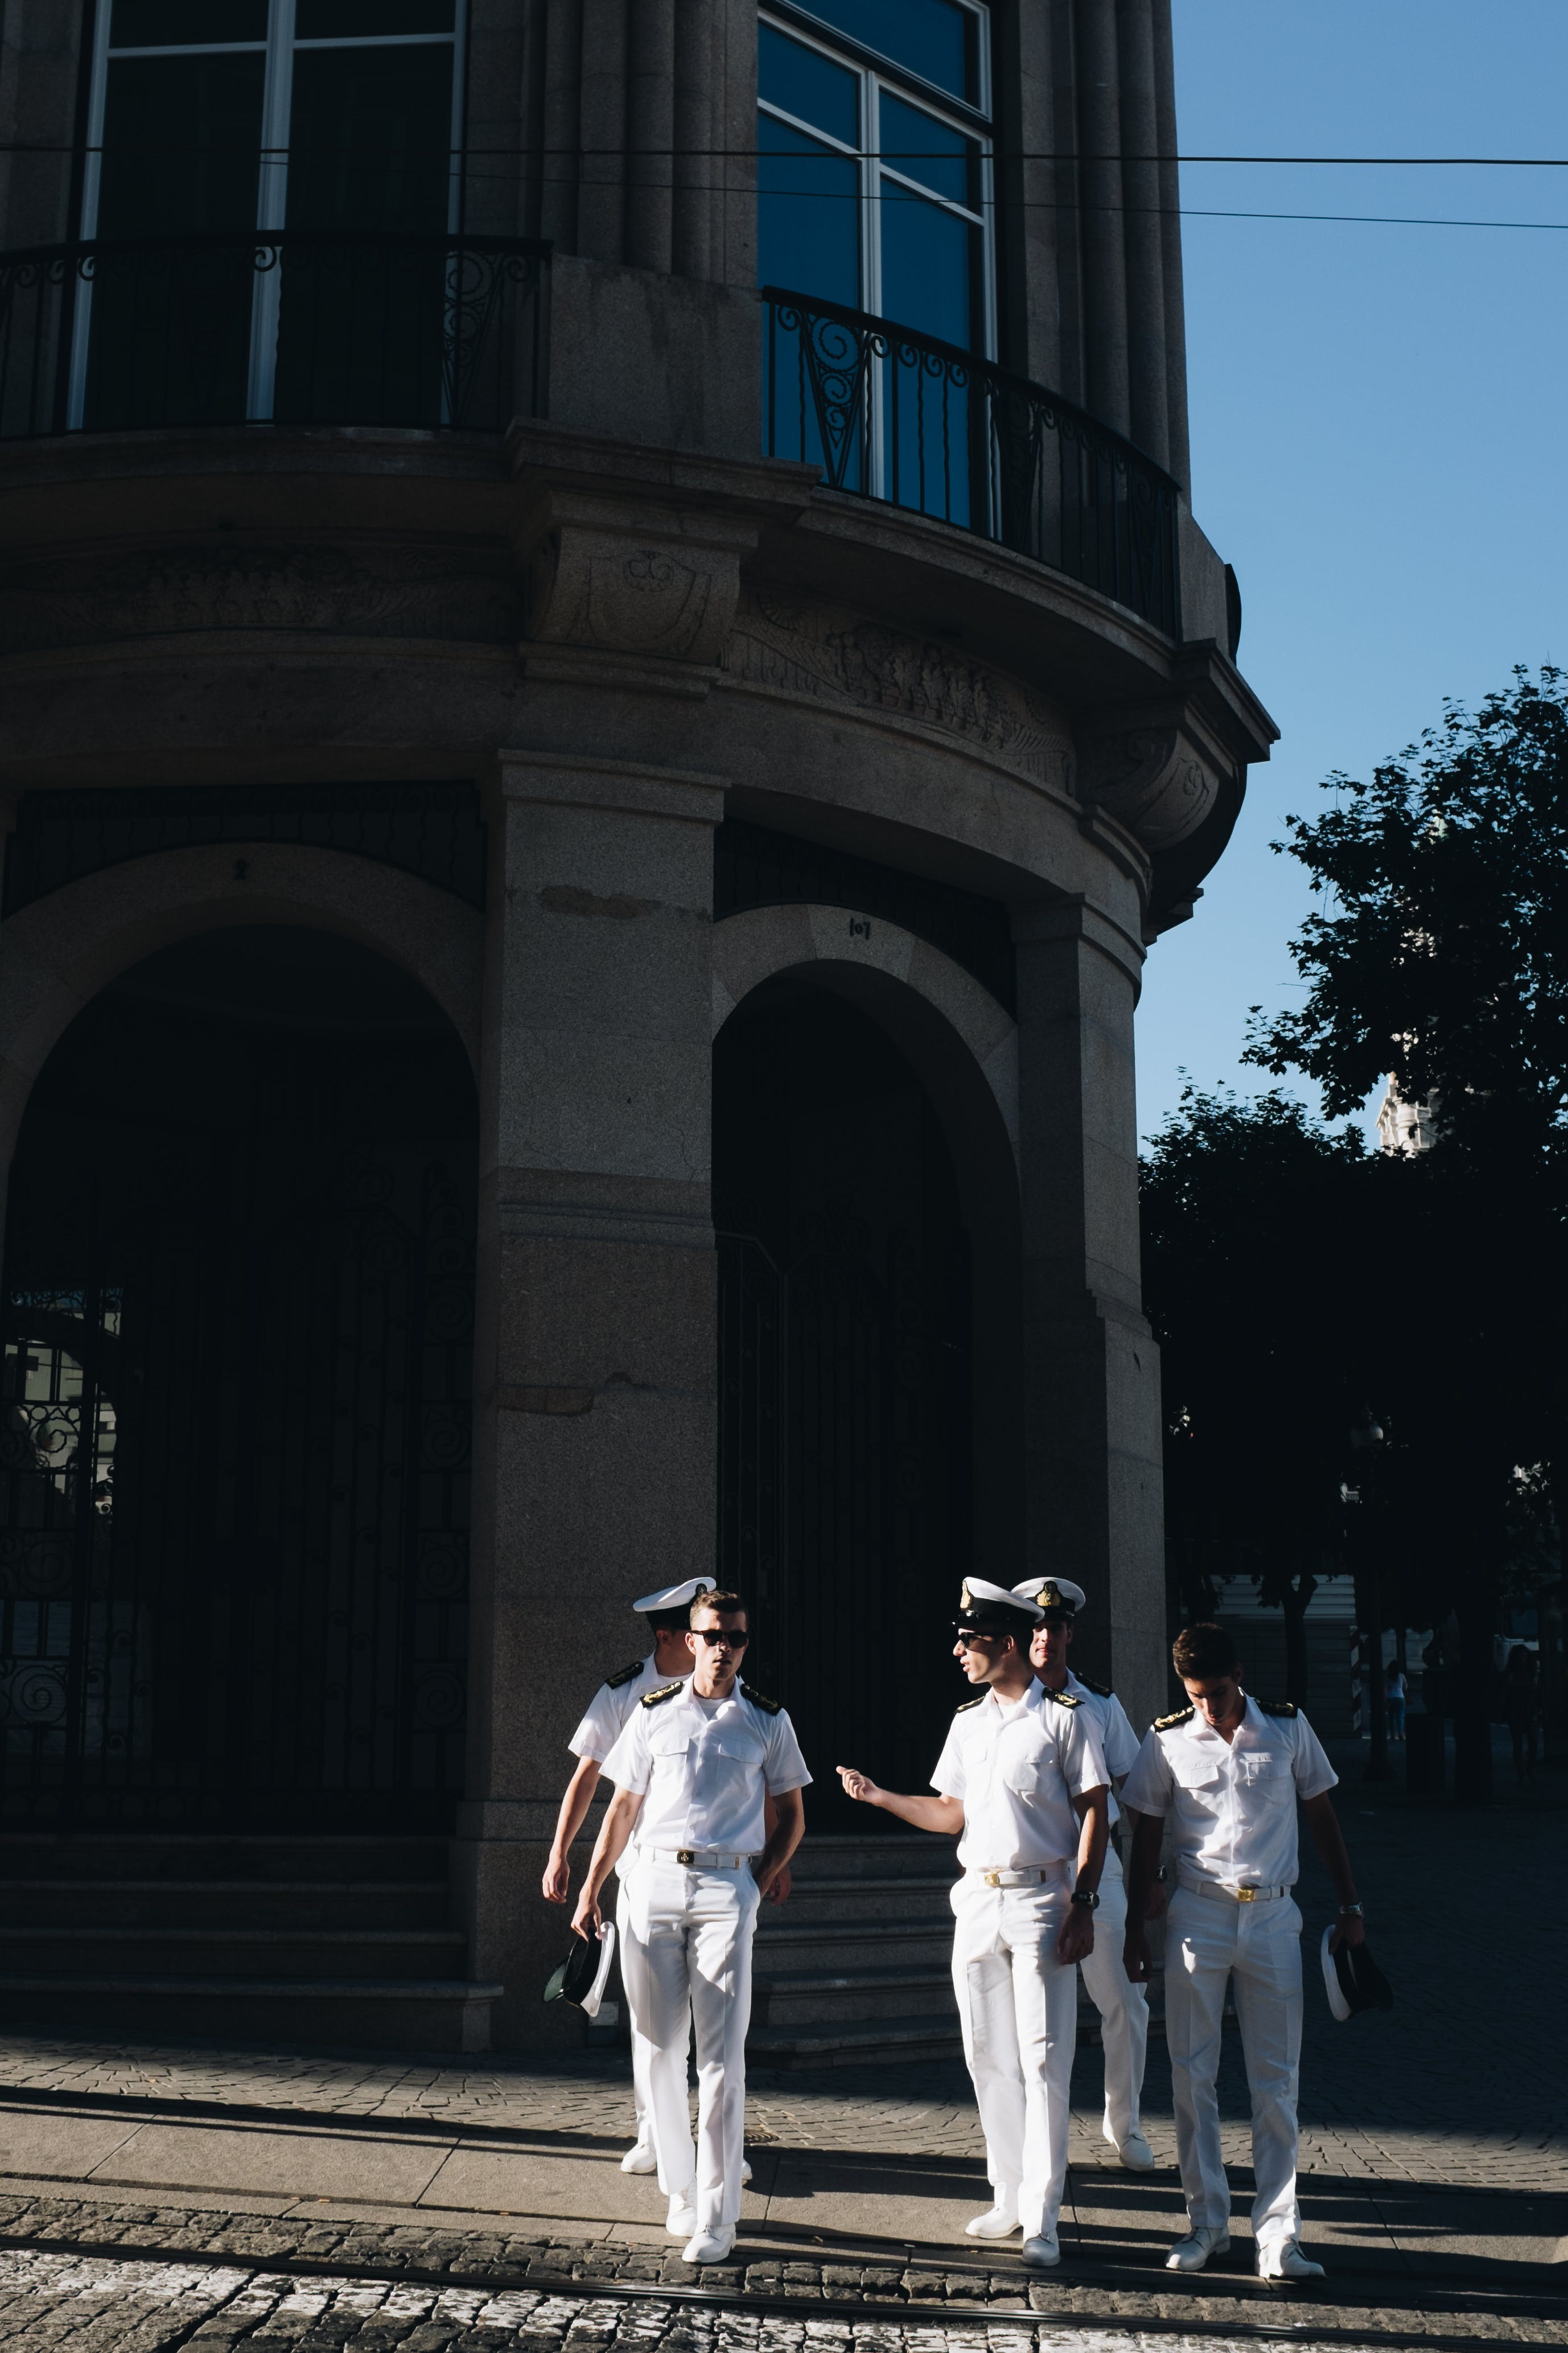 Five Navy Officers Standing Near Building